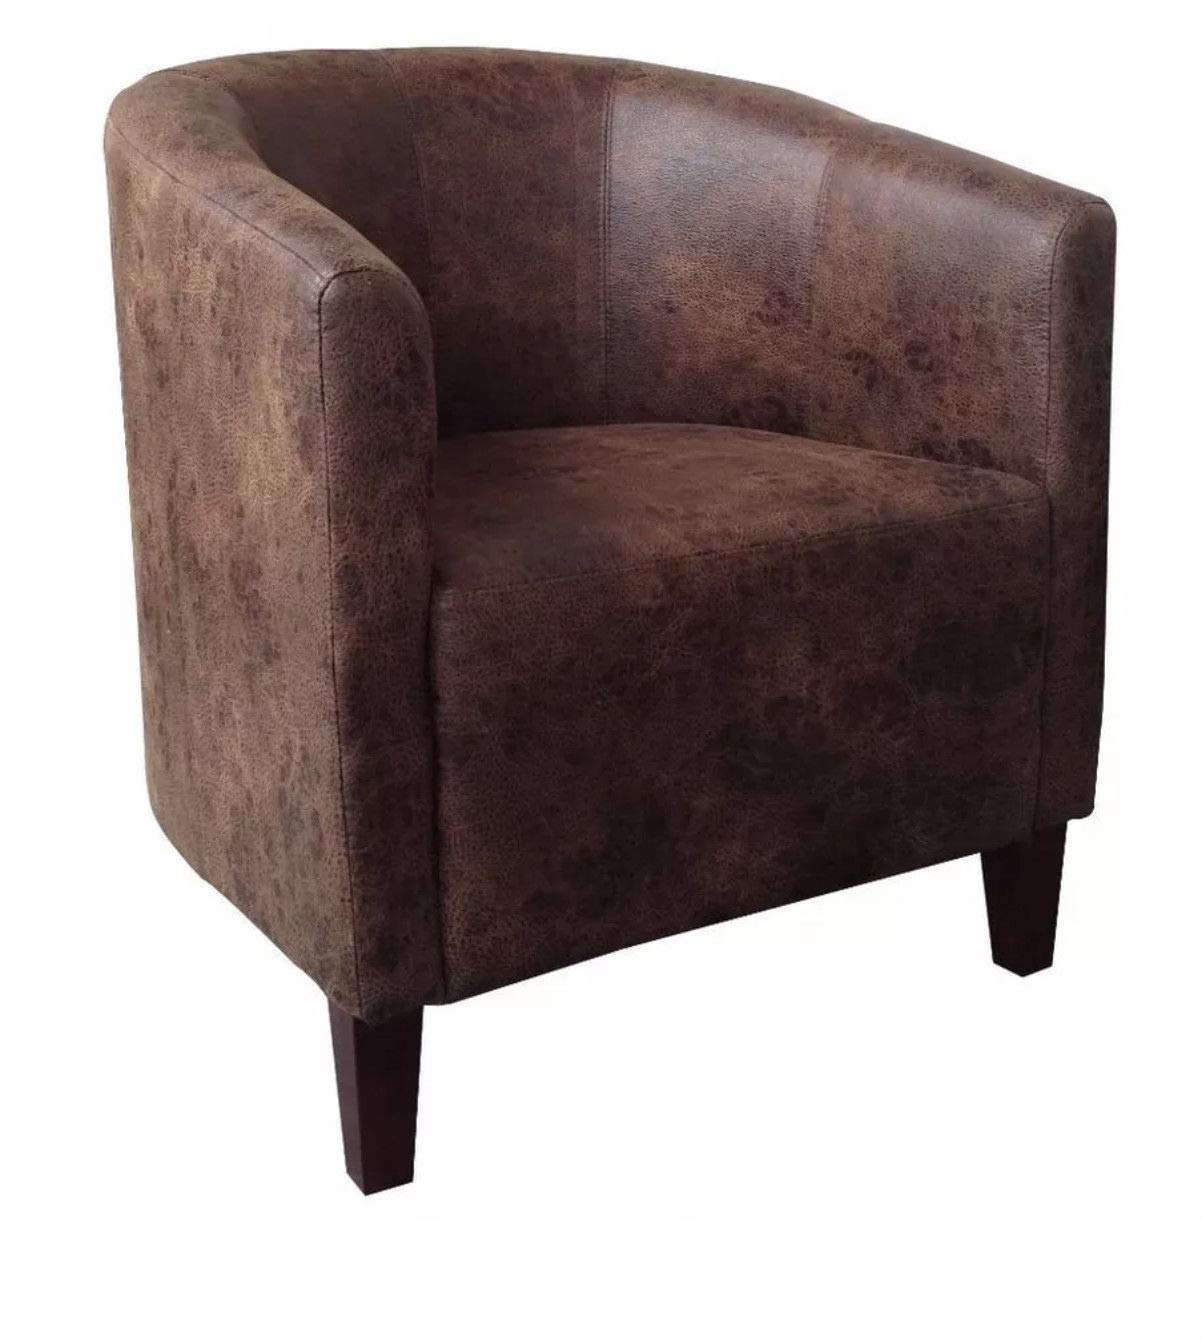 One Furniture JumboFabric Tub Chair Armchair for Dining Living Room Office Reception – Dark Brown